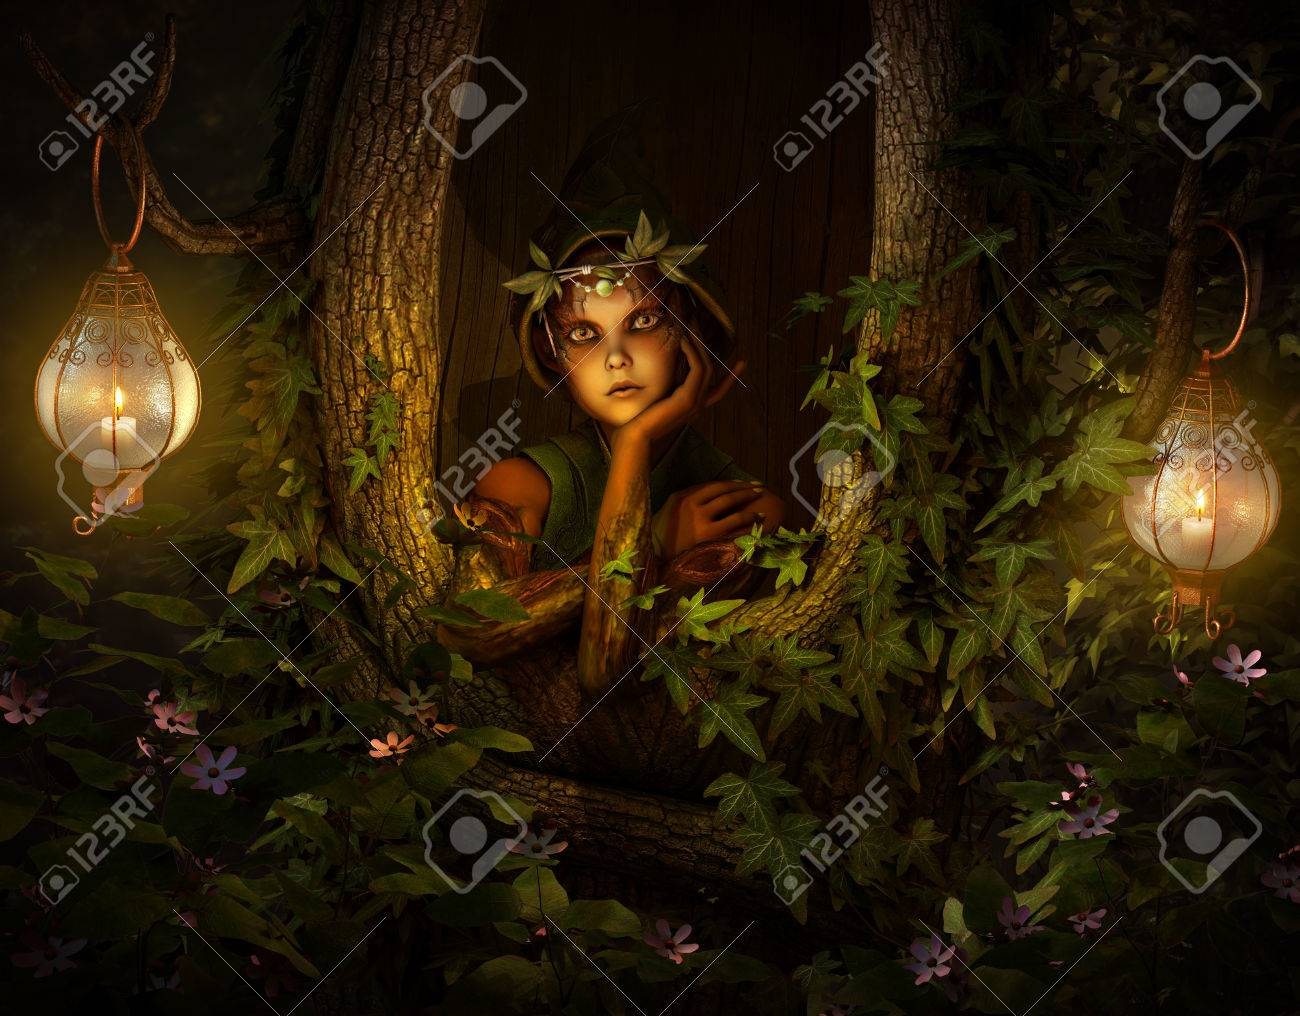 3d computer graphics of a pixie who looks out of a hollow tree